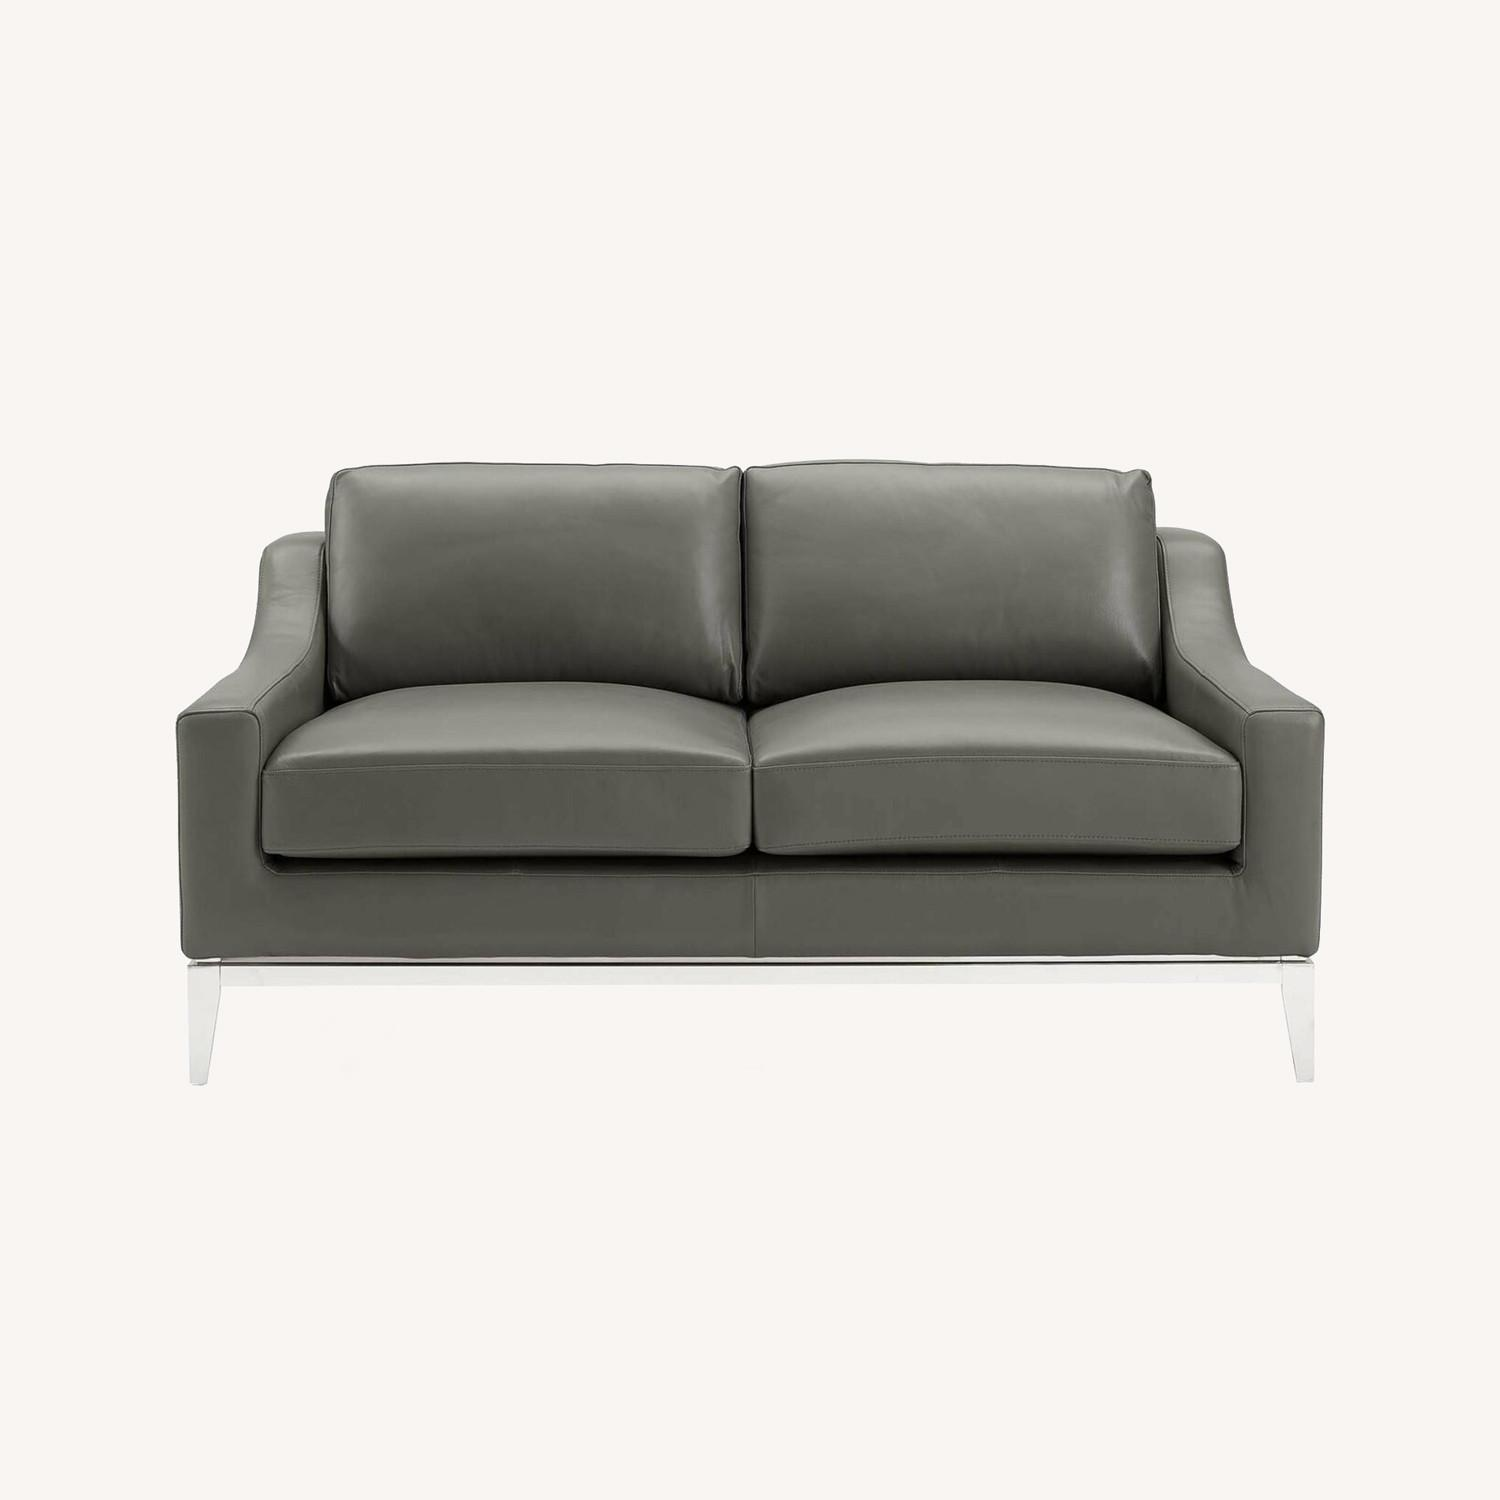 Loveseat In Gray Leather W/ Stainless Steel Base - image-7